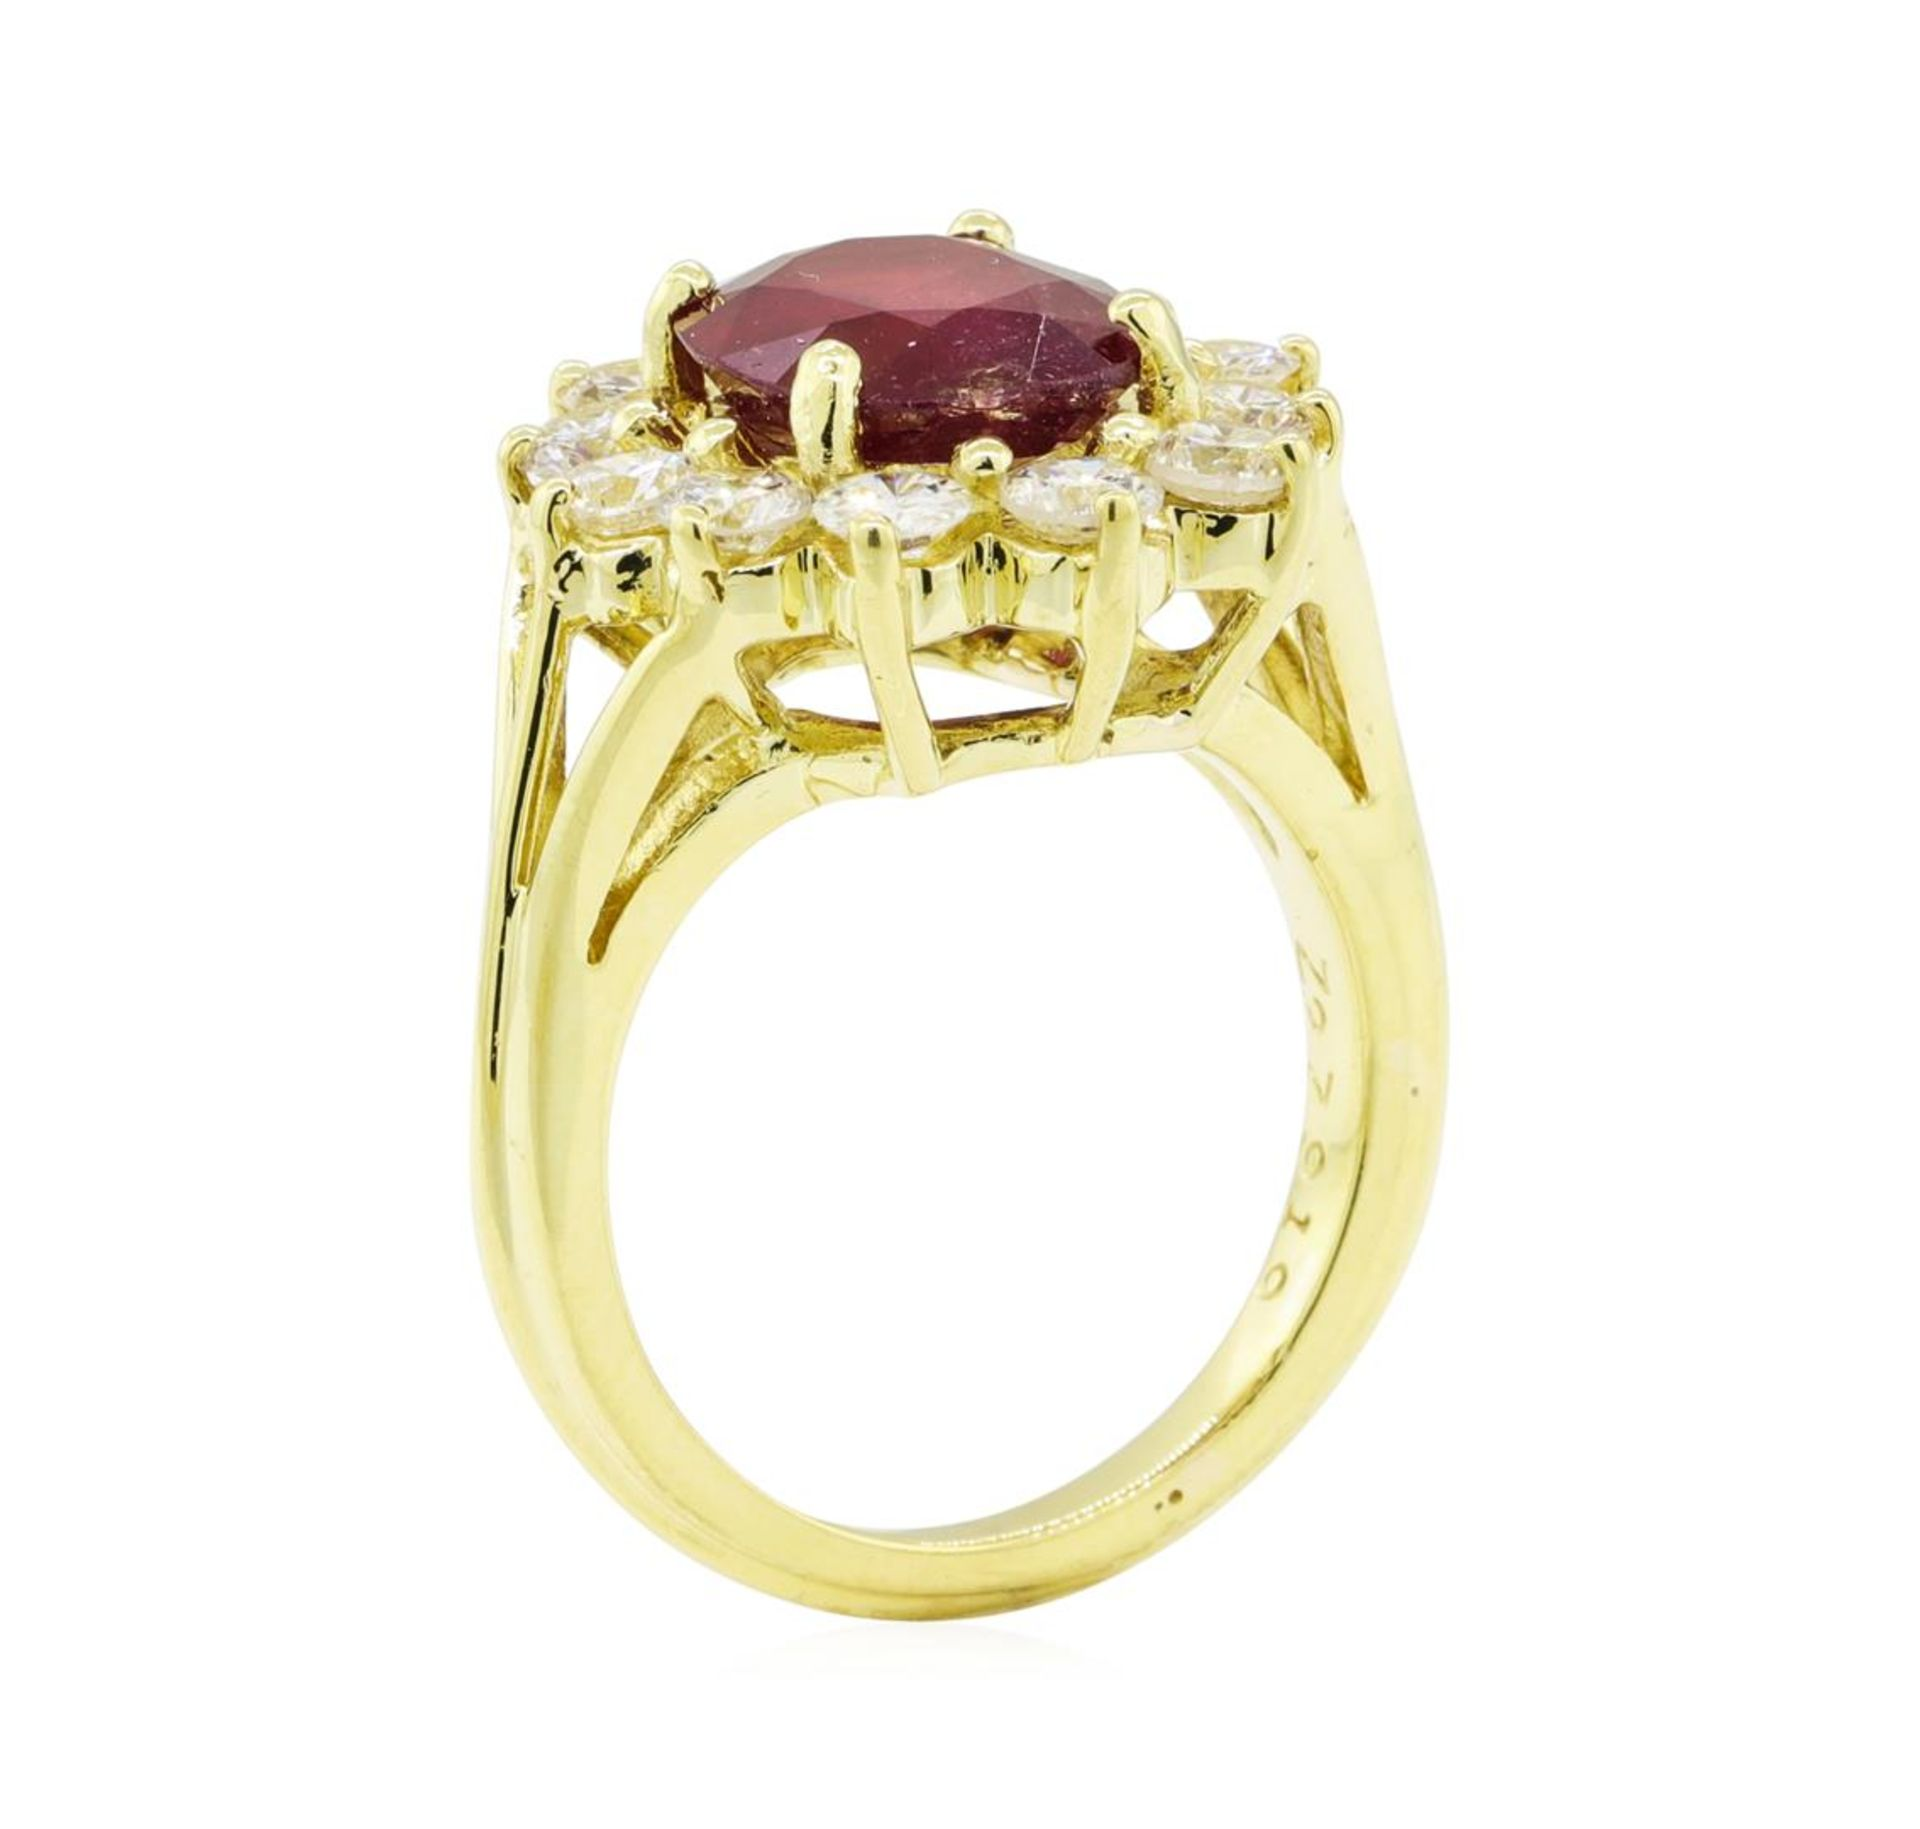 5.51 ctw Ruby and Diamond Ring - 18KT Yellow Gold - Image 4 of 5